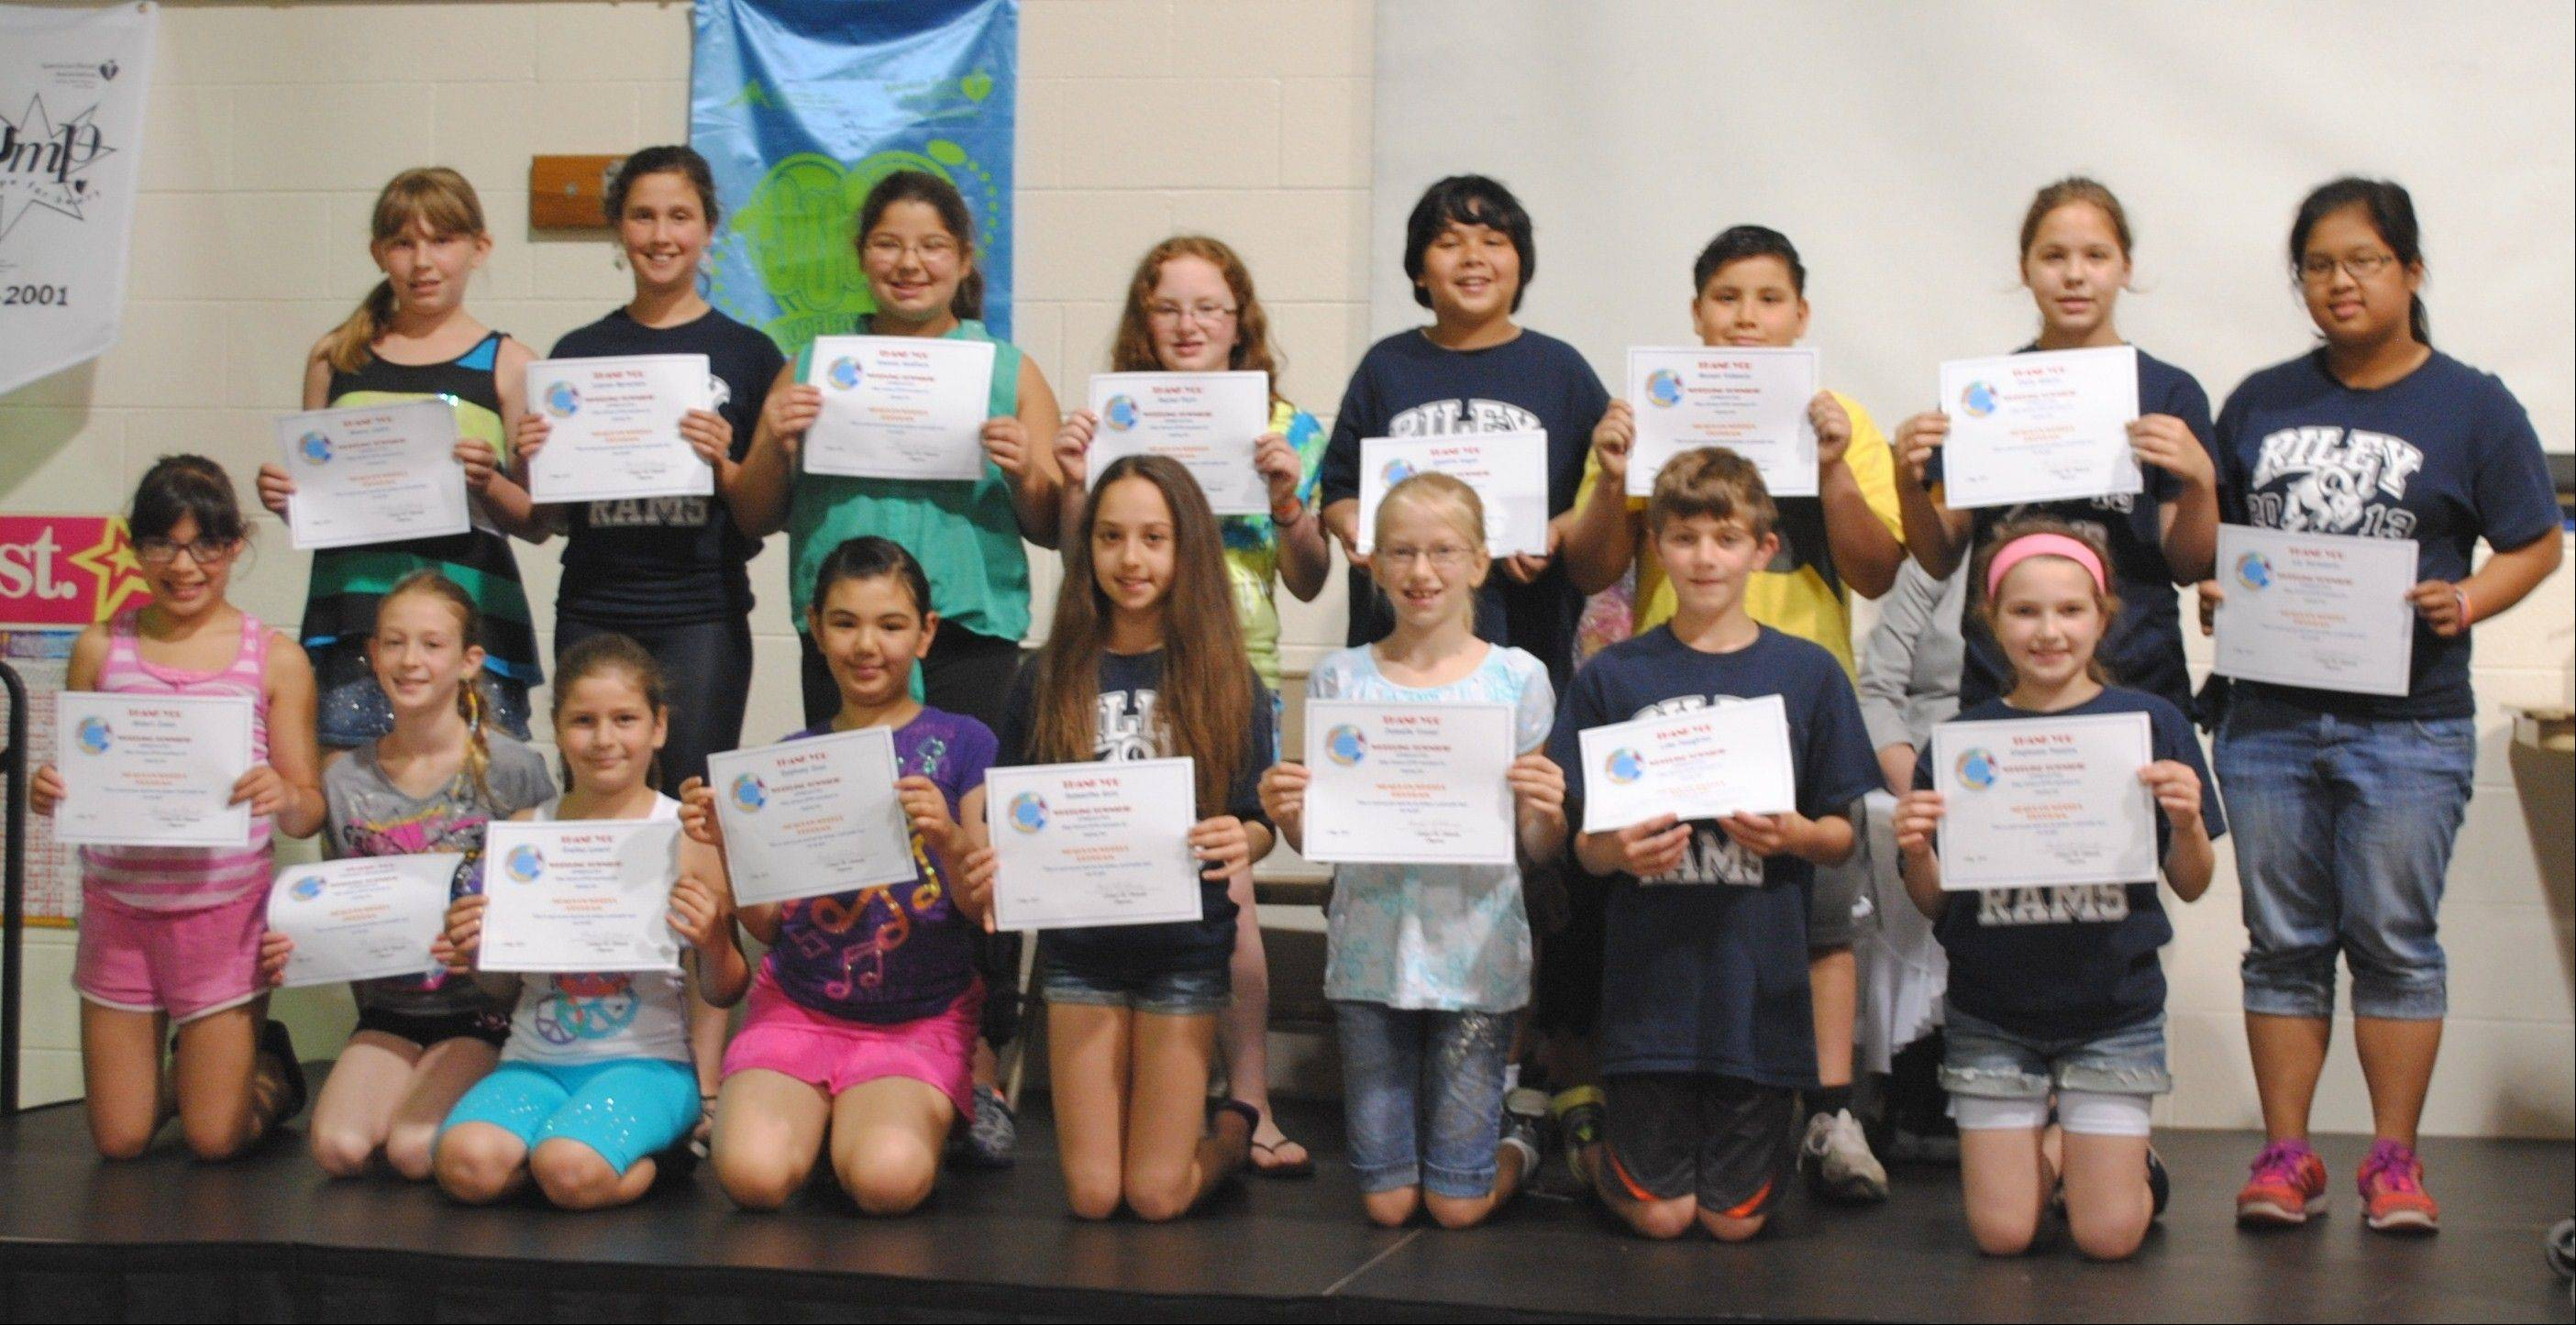 Riley Elementary School SPIN (Supporting People in Need) members proudly display certificates of achievement received from Wheeling Township Supervisor Michael Schroeder during an awards ceremony held May 30.